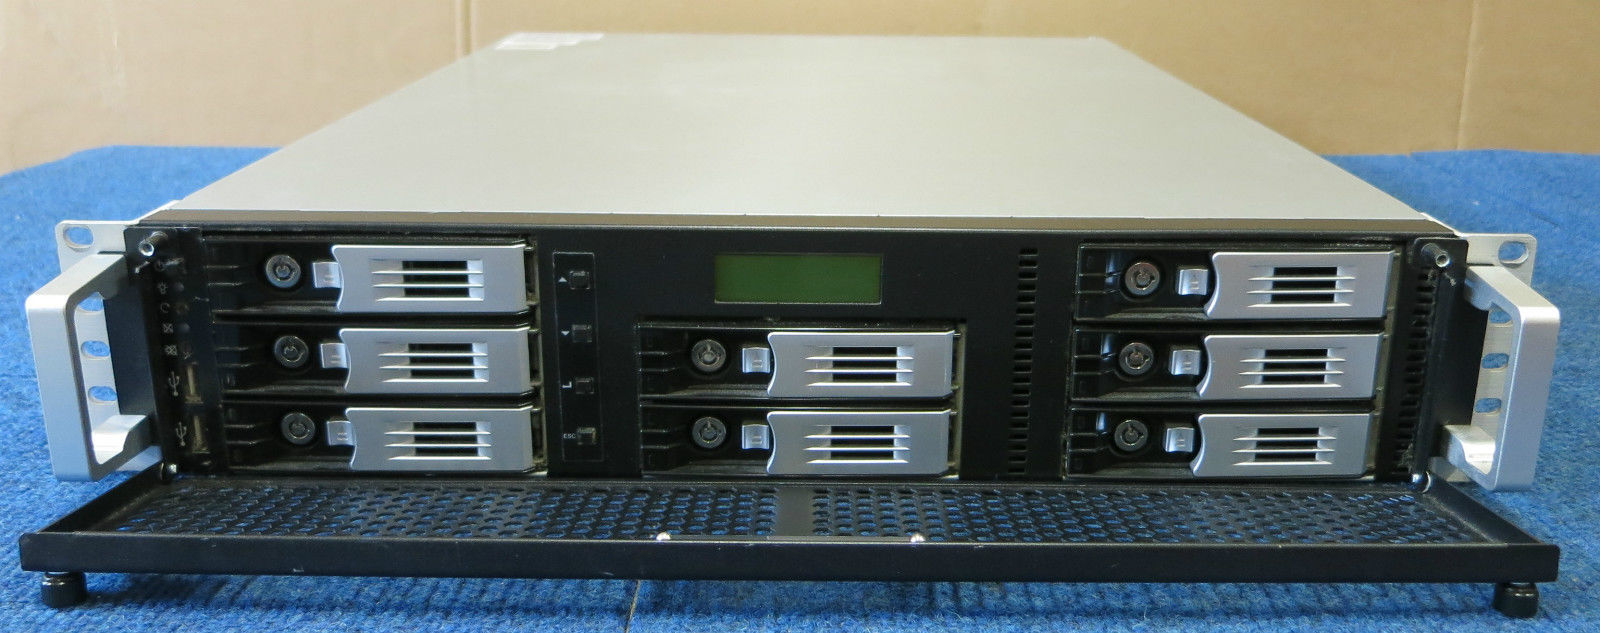 THECUS N8800+ NAS SERVER DRIVER FOR PC